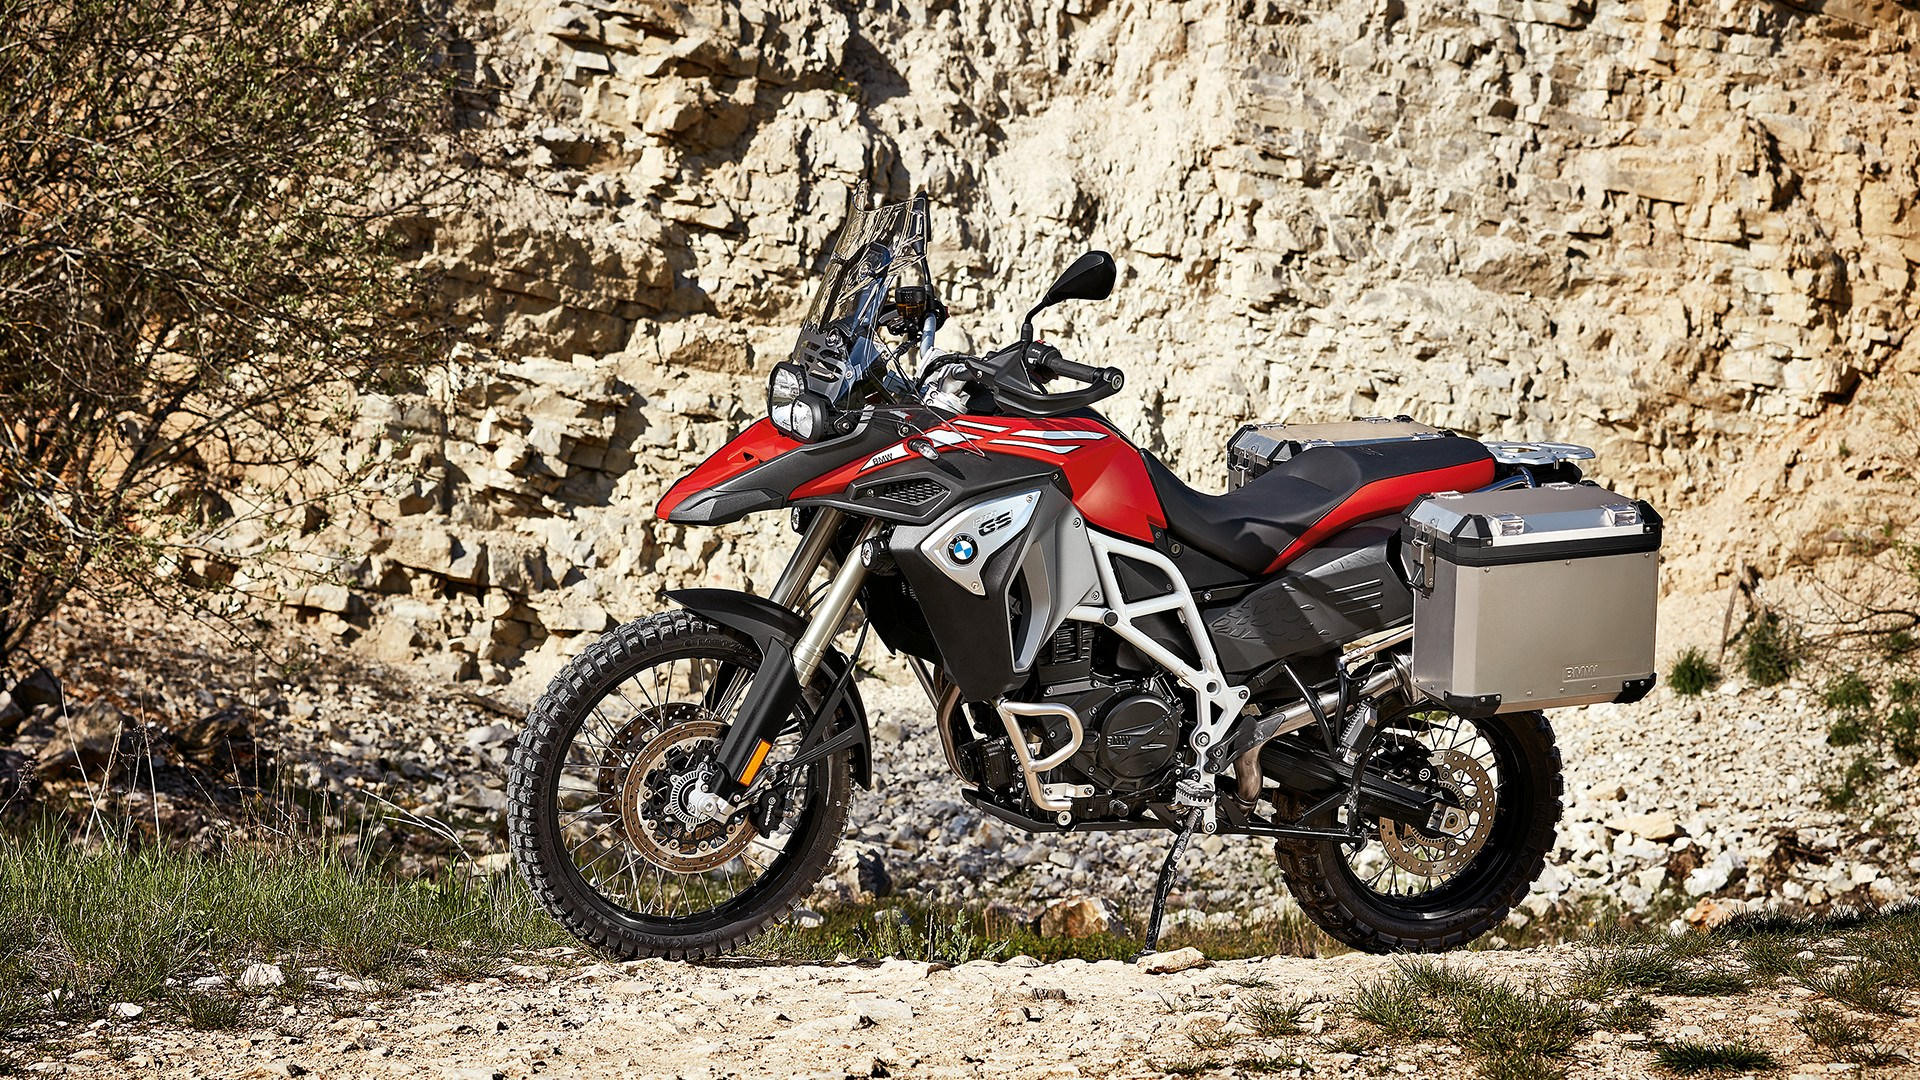 2017 BMW F 800 GS Adventure in Daytona Beach, Florida